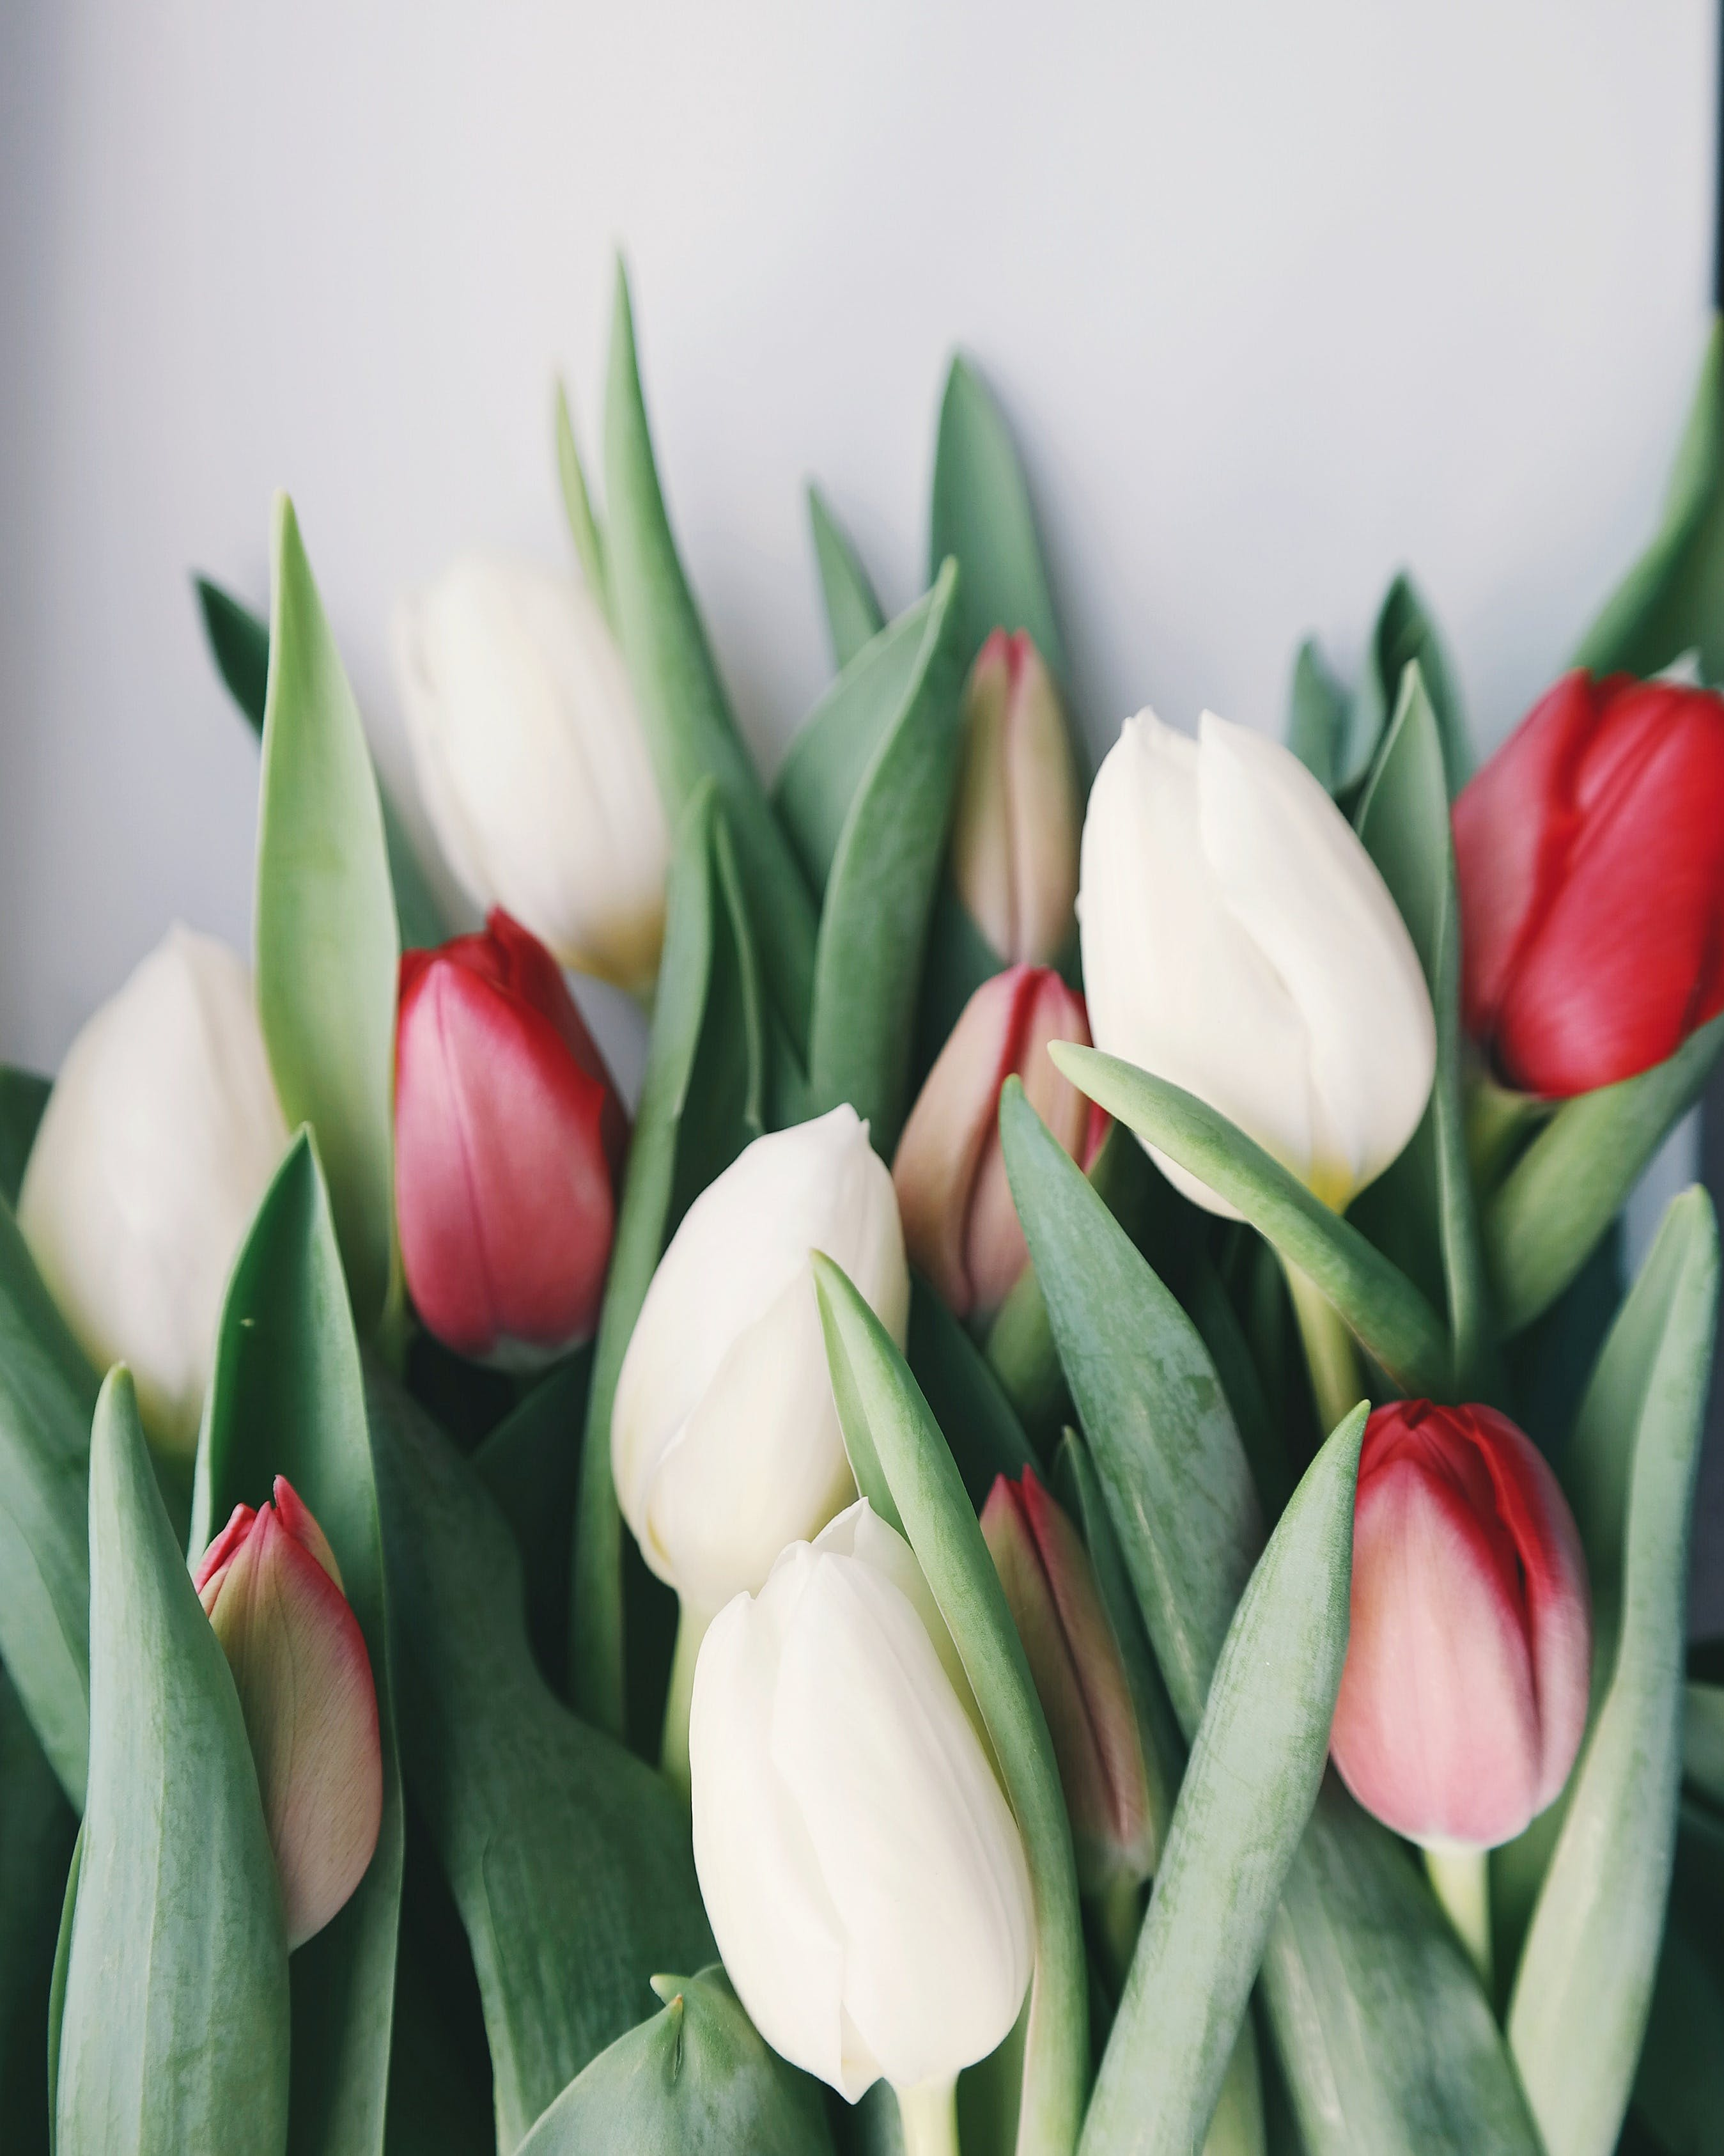 Selective Focus Photography of White and Red Tulip Flowers